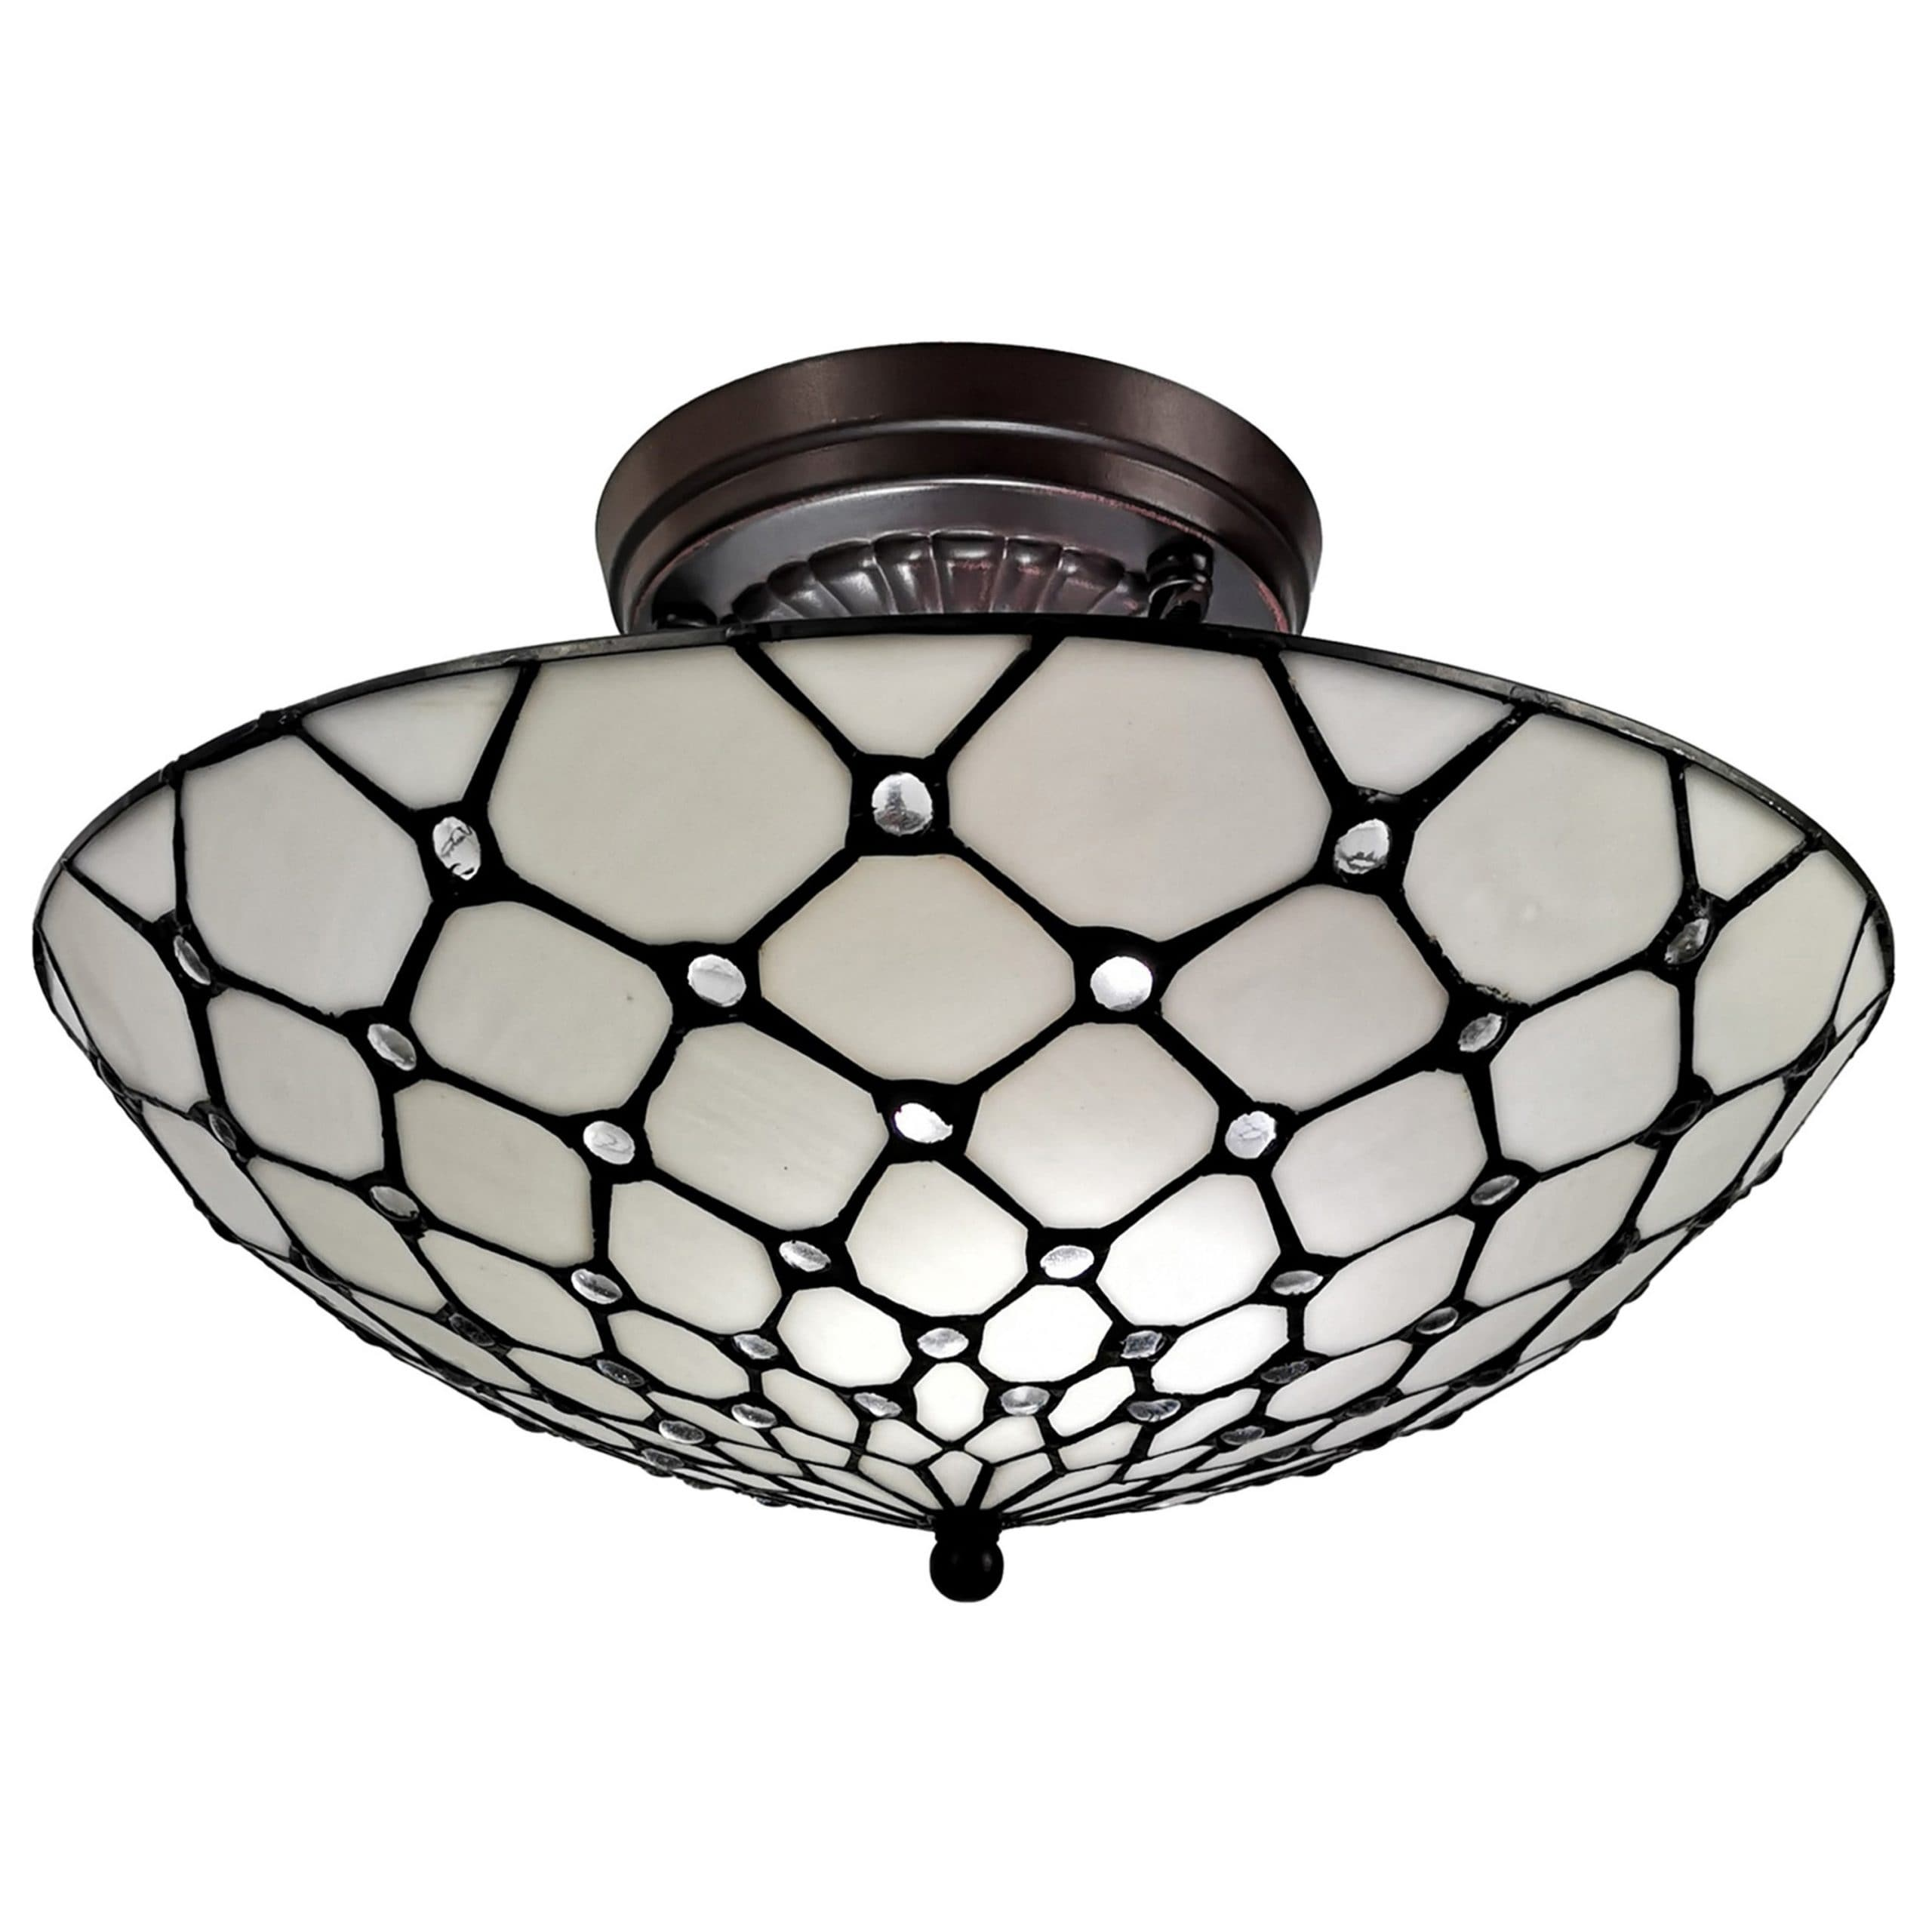 Shop Black Friday Deals On Tiffany Style Ceiling Fixture Lamp Jeweled 17 Wide Stained Glass White Bedroom Hallway Gift Am030cl17b Amora Lighting Overstock 10013202 White